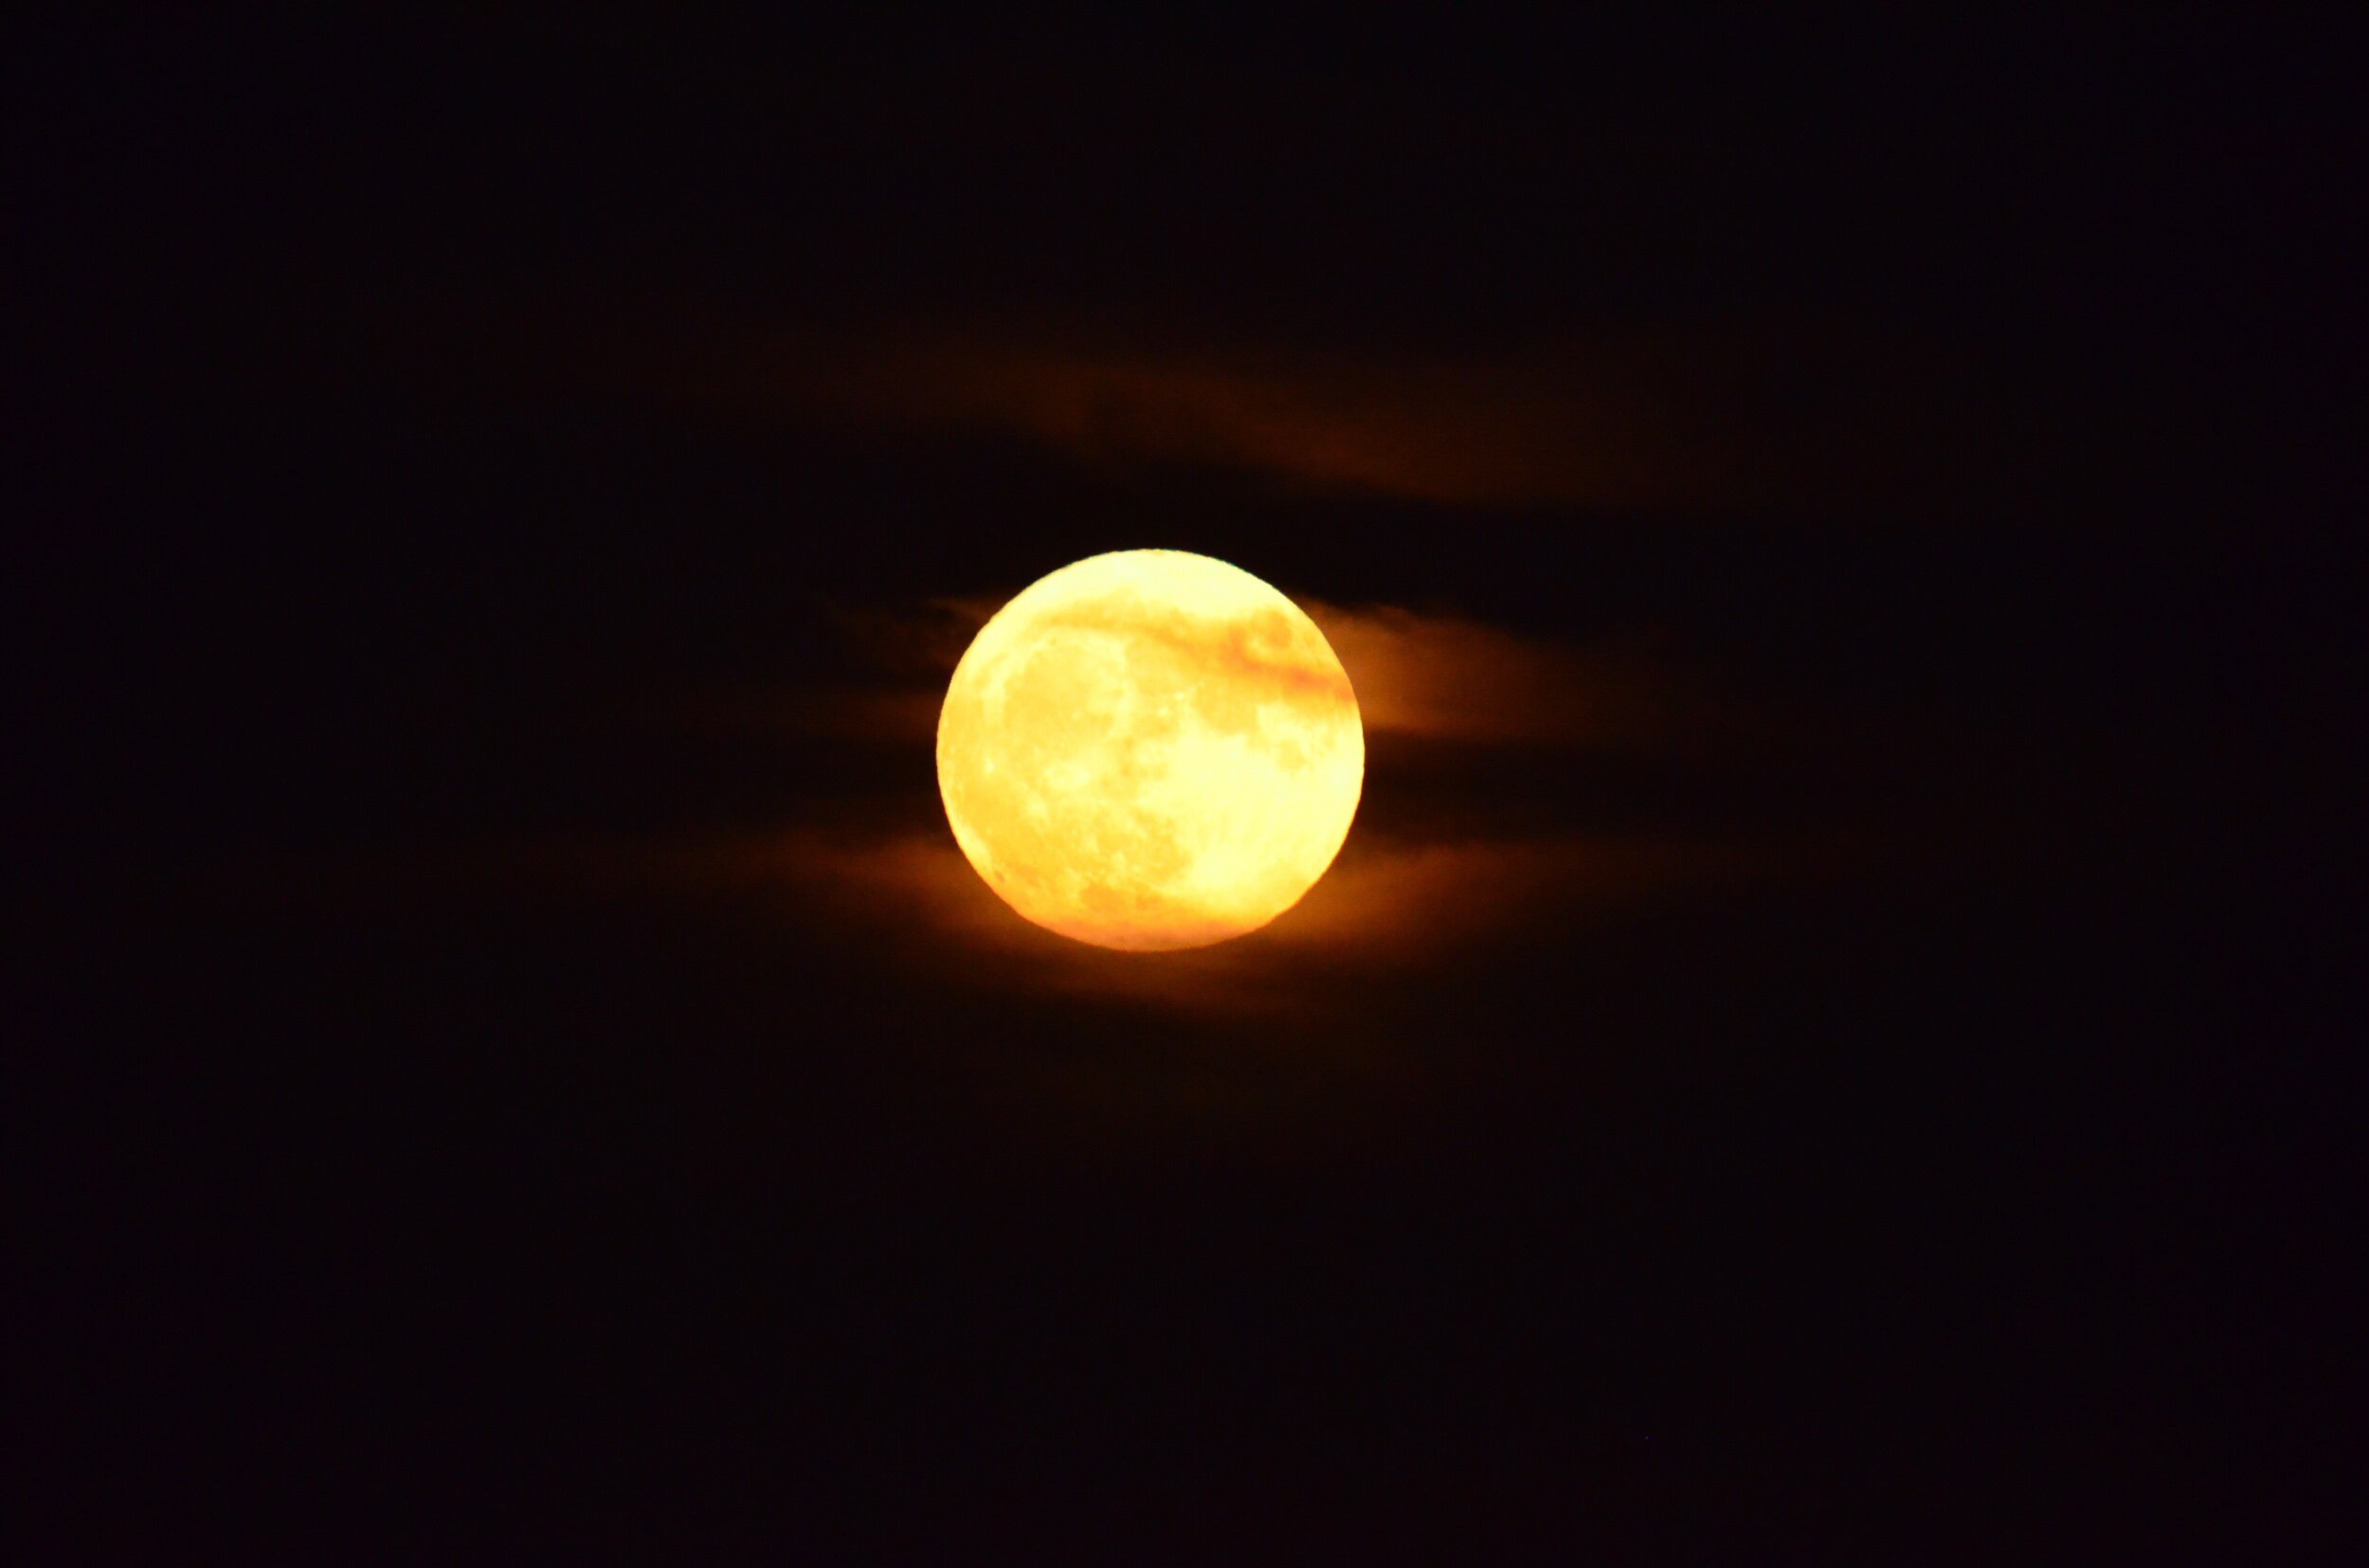 The harvest moon in its full glory